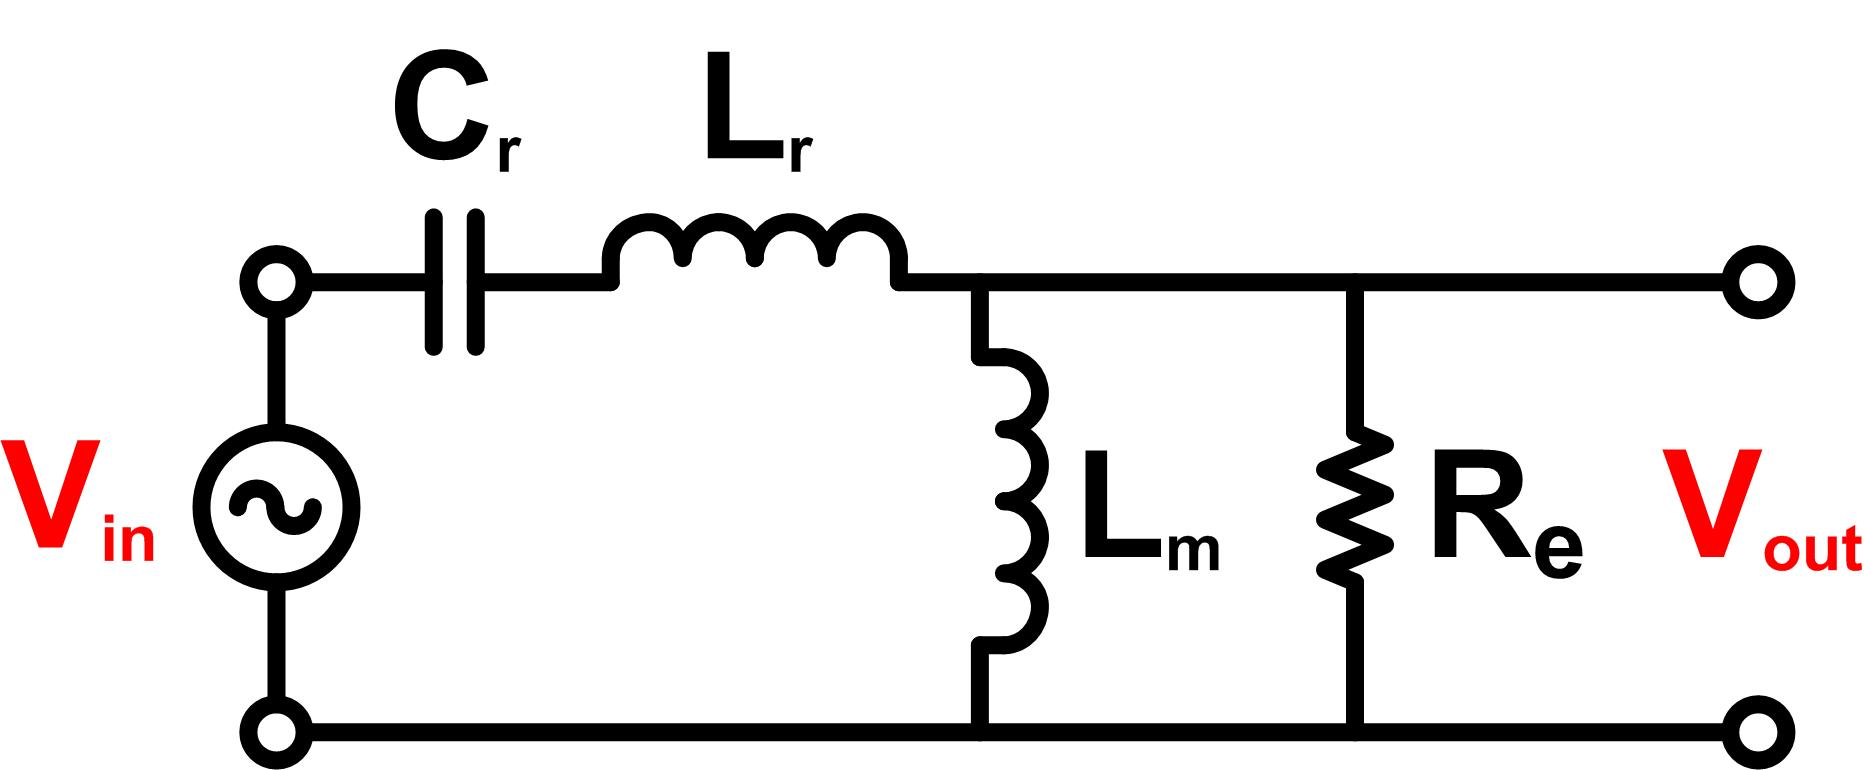 Op   Cookbook Part 4 likewise Led Matrix Dimming How To Control The Current In A 12v Led L  For Video Light additionally US7932693 likewise Transistor Bootstrapping in addition Rc Snubber Calculation. on ac circuit design